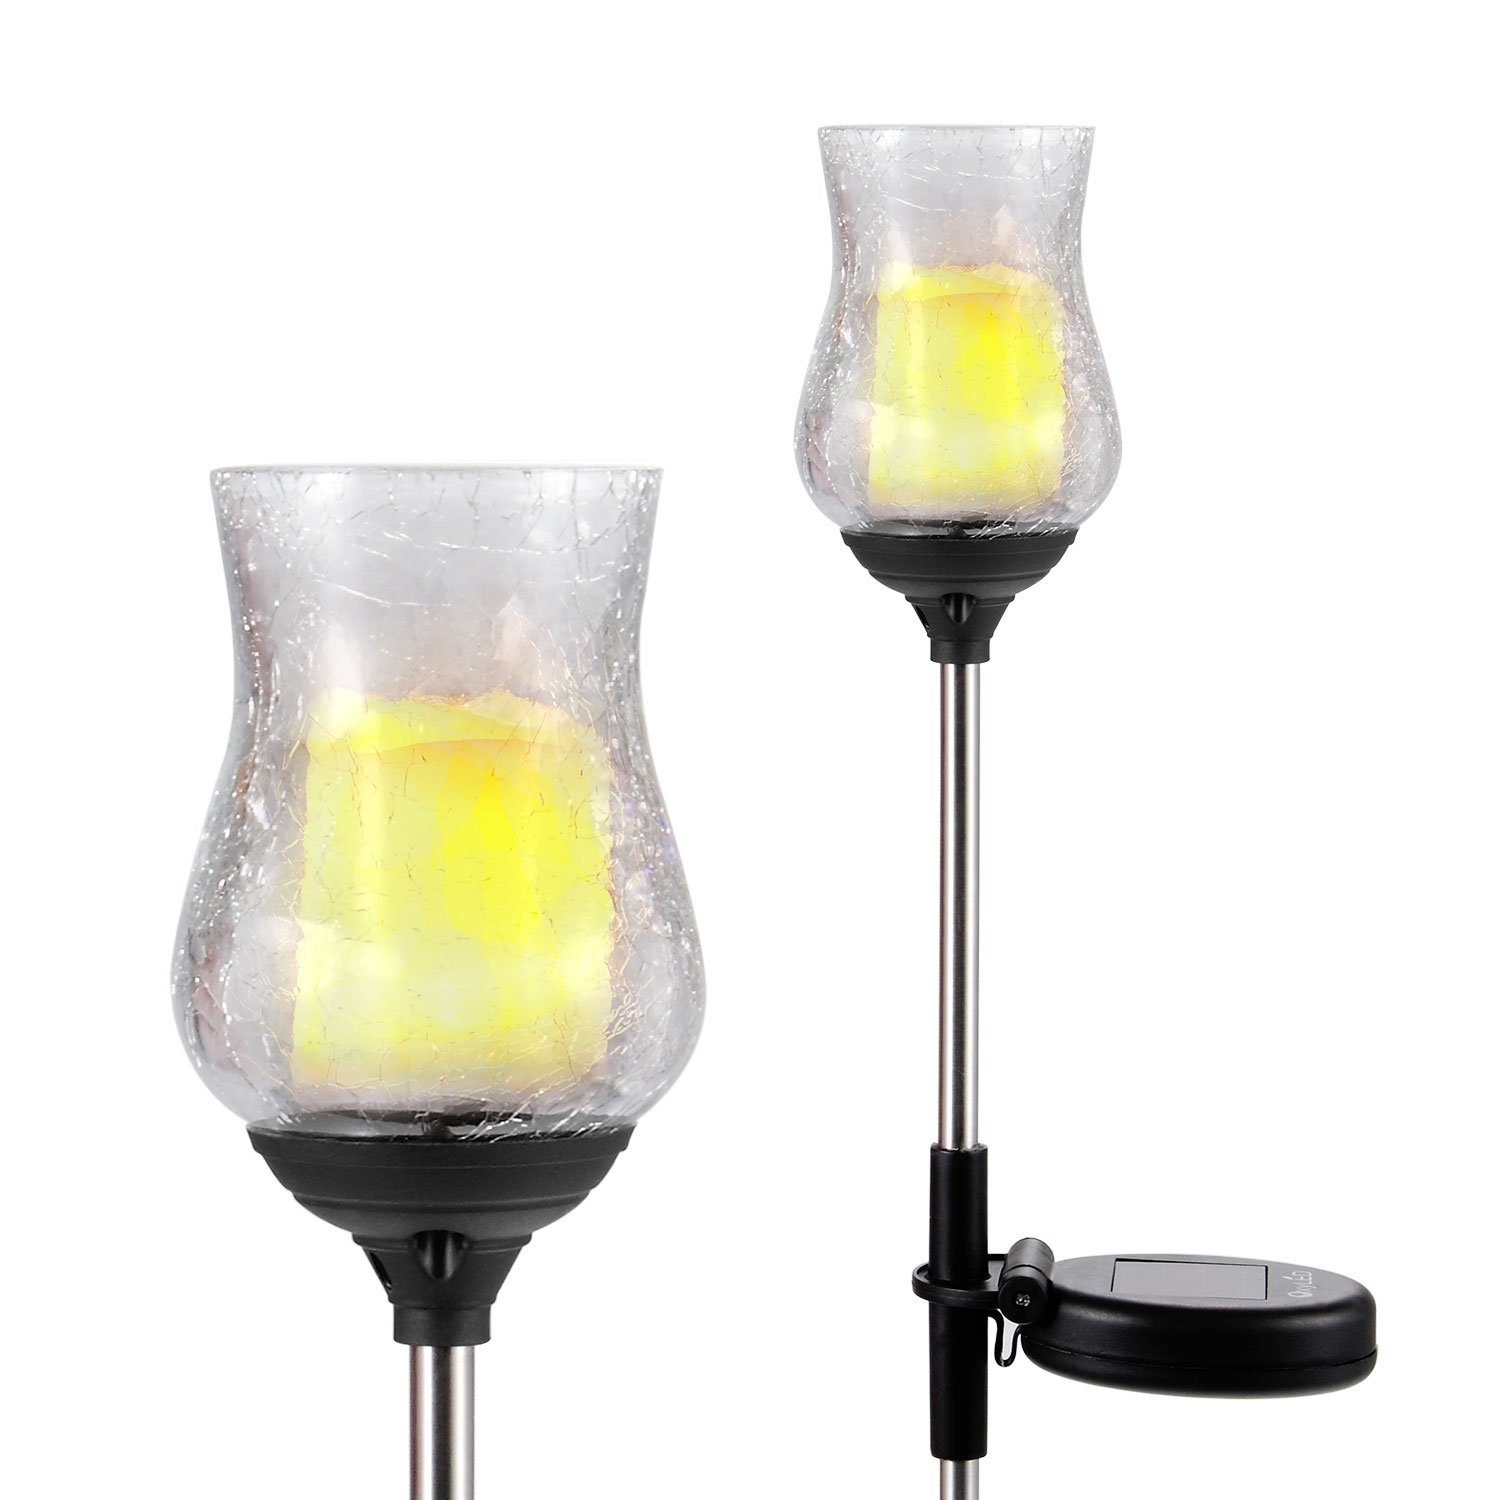 Crackle Glass Glickering Candle LED Solar Garden Light Outdoor Solar Power Lawn Light with Light Sensor Warm White Porch Light